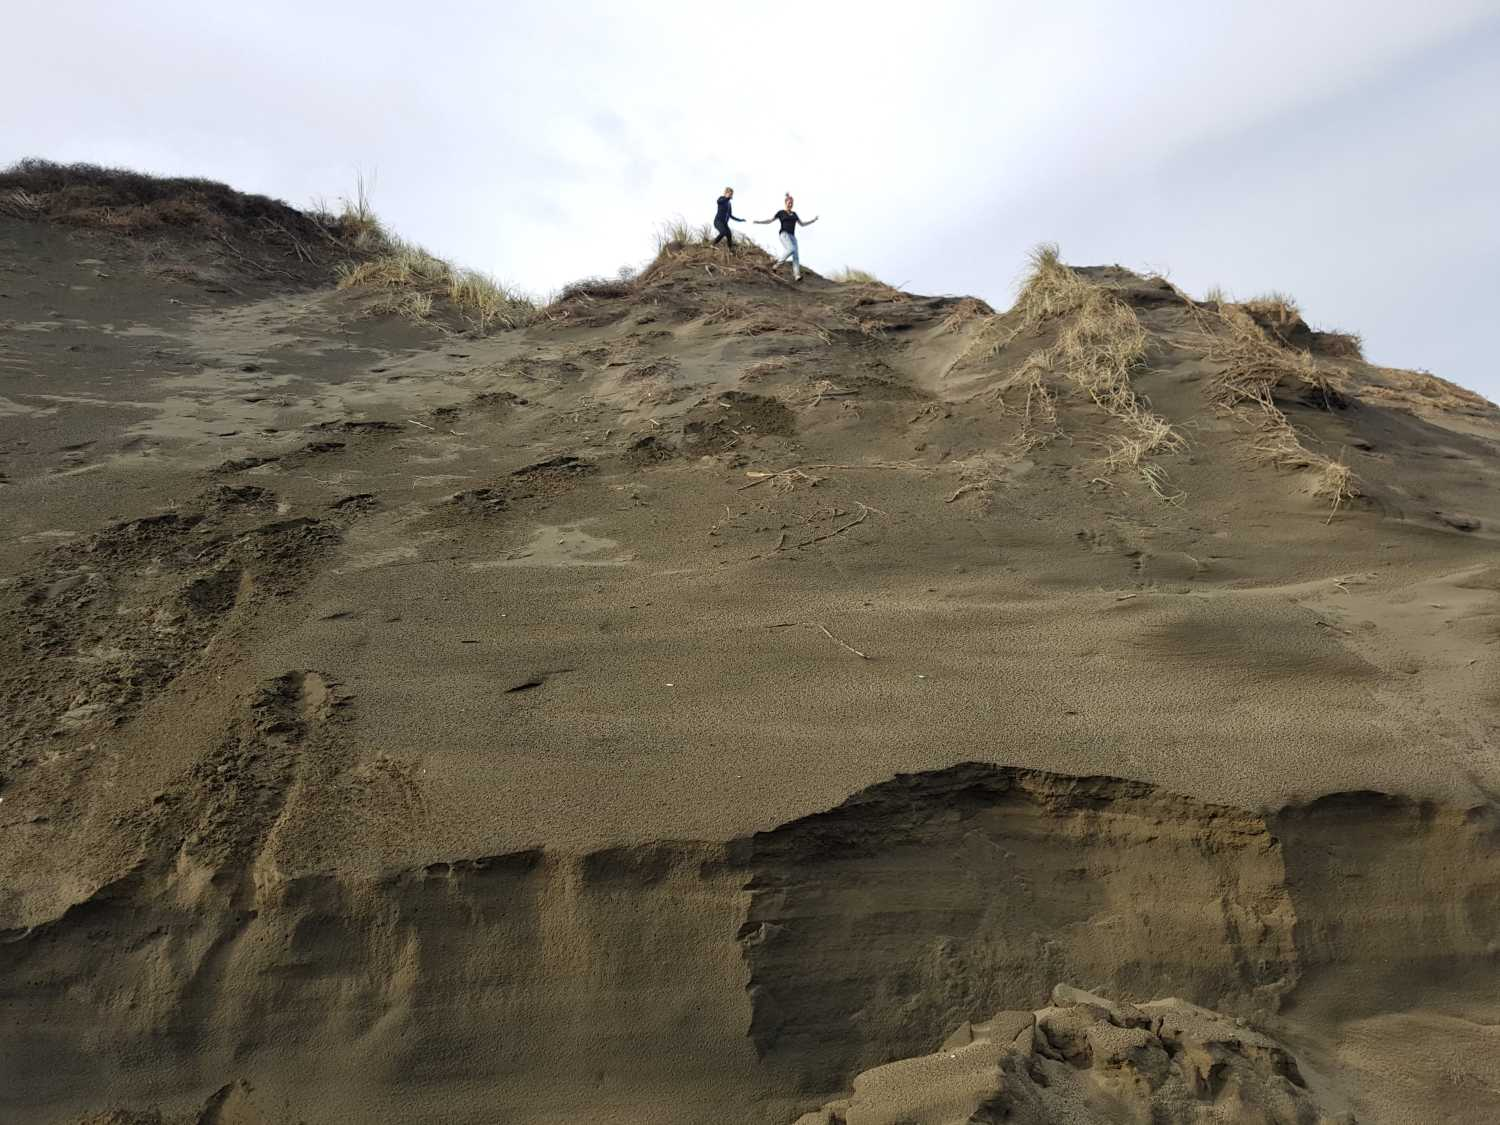 Tour group explores the Muriwai sand dunes